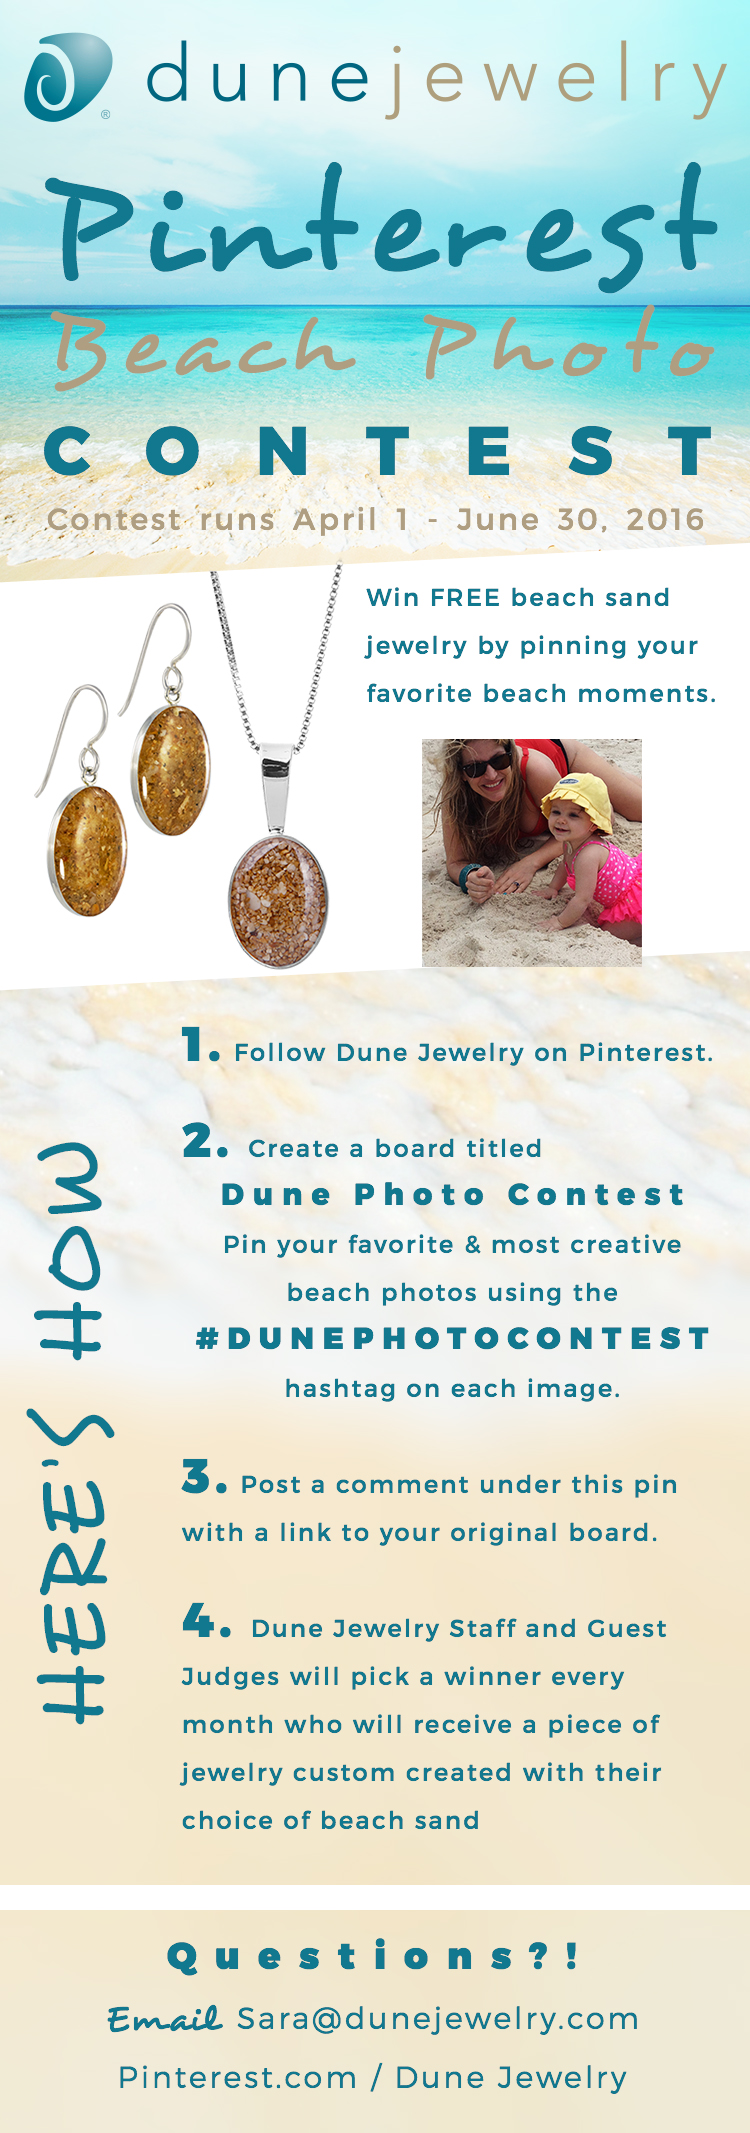 Dune Jewelry Pinterest Beach Photo Contest, Contest runs April 1 - June 30. Win FREE beach sand jewelry by pinning your favorite beach moments.  Here's How: 1. Follow Dune Jewelry on Pinterest.  2. Create a board titled Dune Photo Contest Pin your favorite & most creative beach photos using the  #DunePhotoContest hashtag on each image.  3. Post a comment under this pin with a link to your original board.  4. Dune Jewelry Staff and Guest Judges will pick a winner every month who will receive a piece of jewelry custom created with their choice of beach sand  Questions?! Email Sara@dunejewelry.com  Pinterest.com / Dune Jewelry